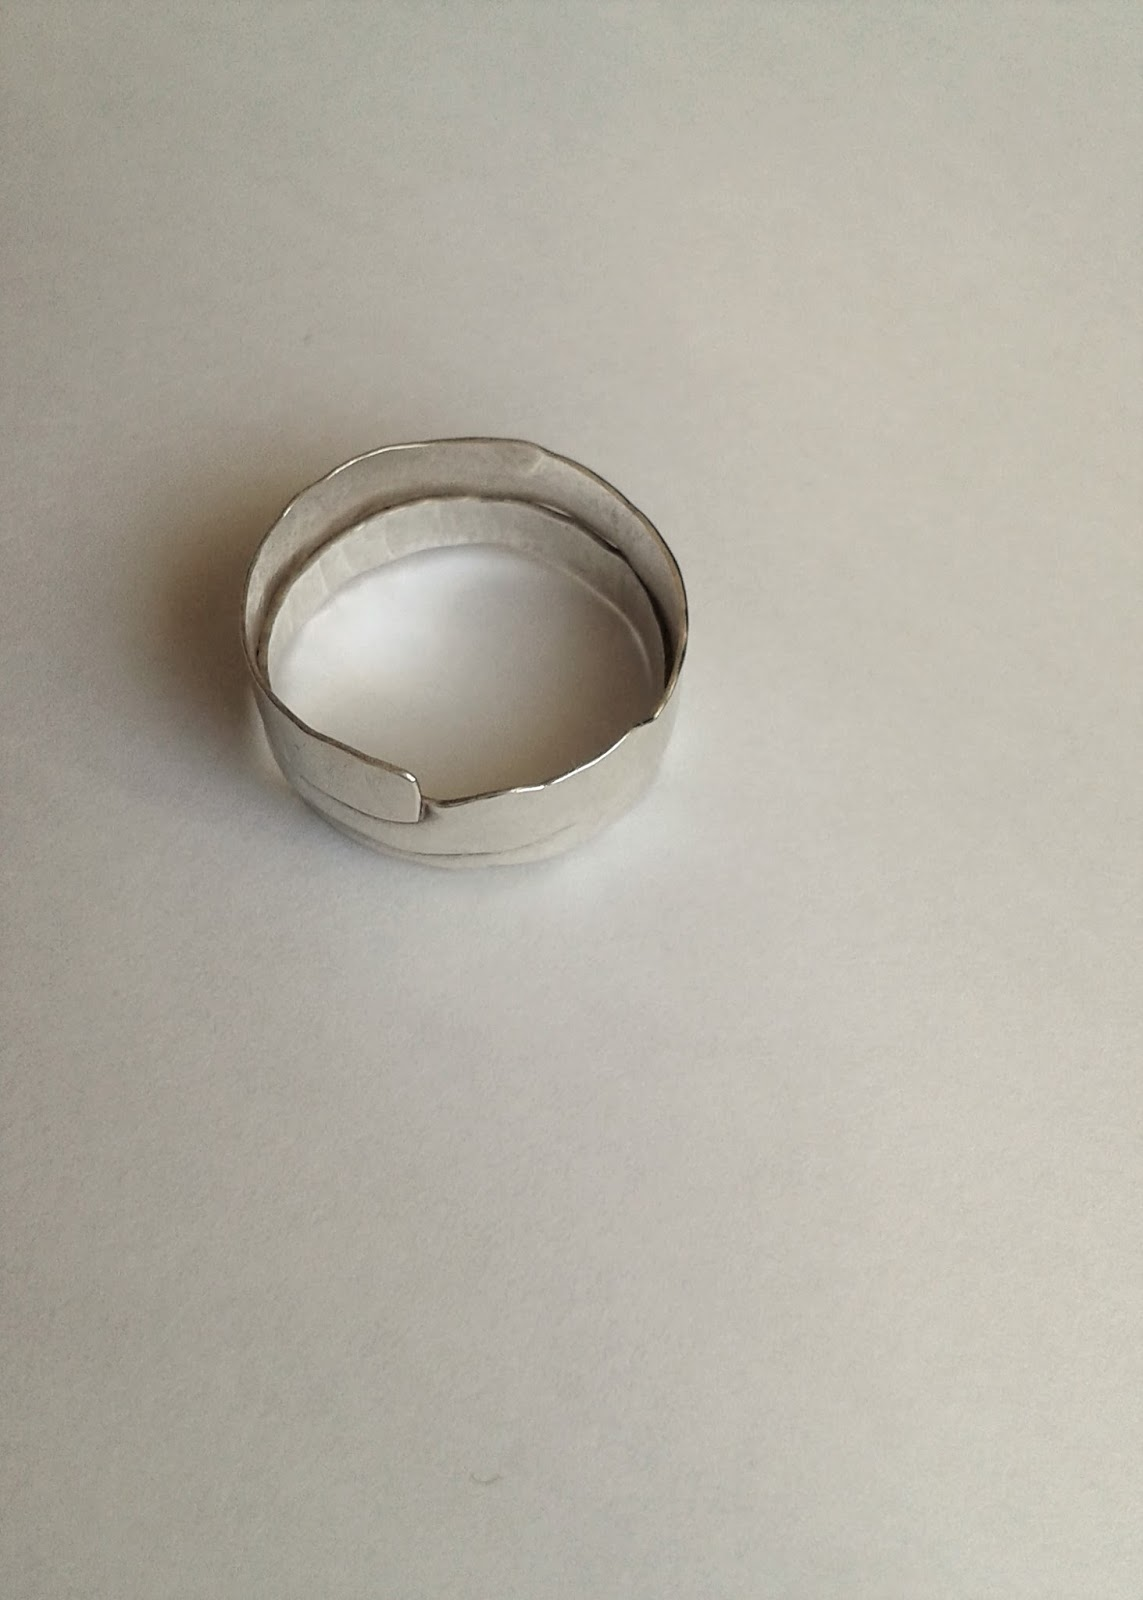 A silver ring on a plain background taken by camera phone